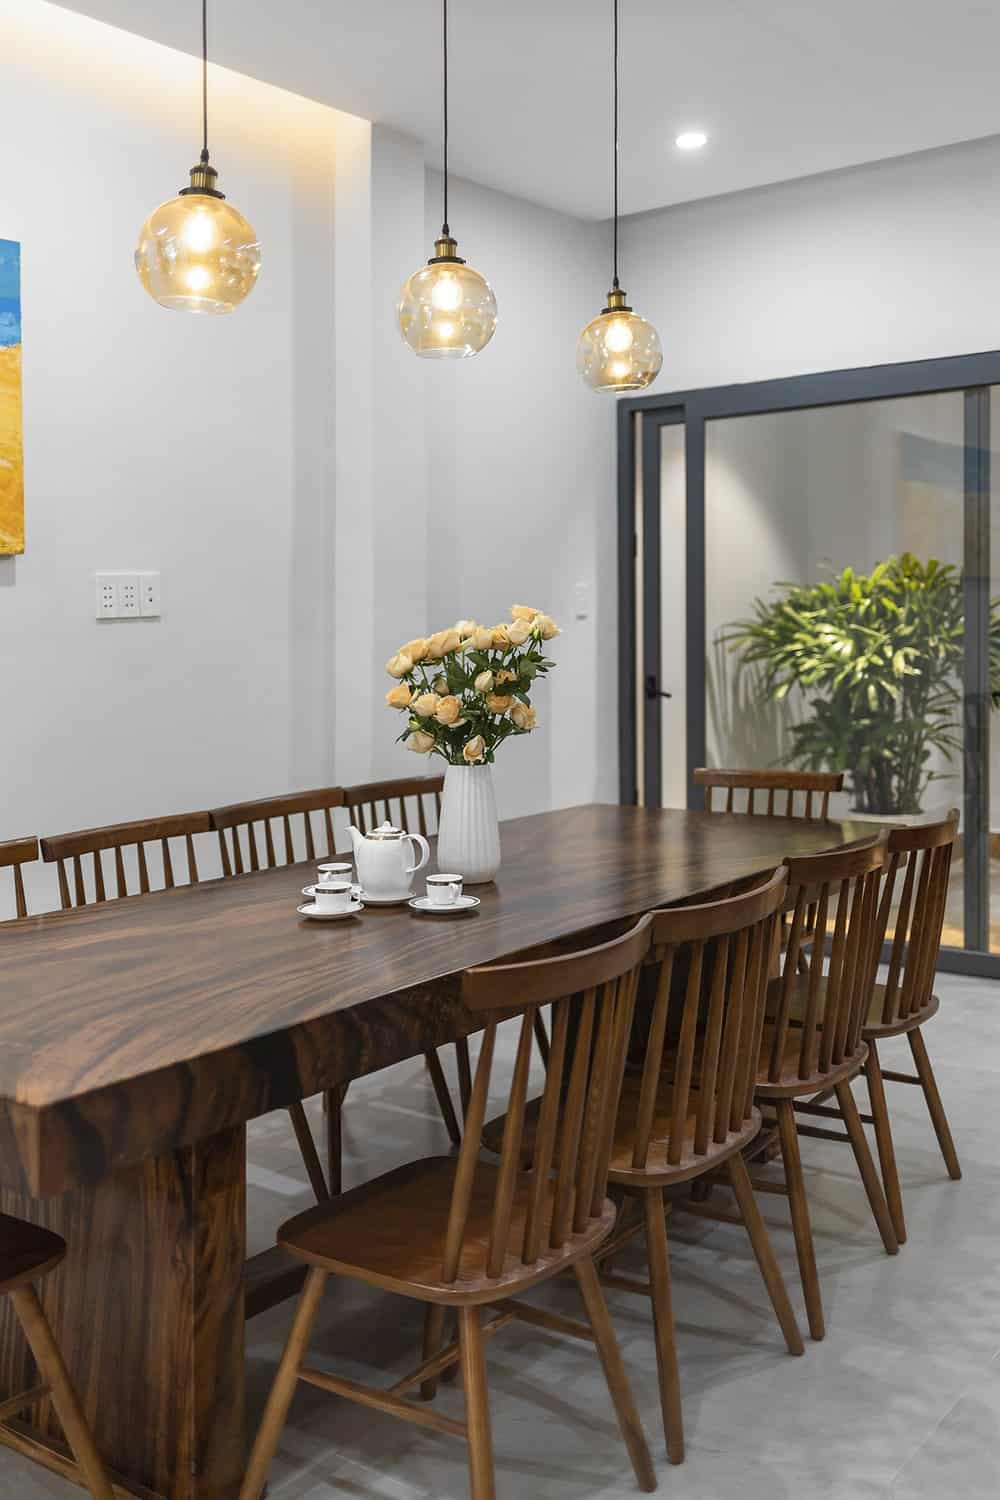 The large rectangular wooden dining table is surrounded by matching wooden chairs and topped with a row of three pendant lights.